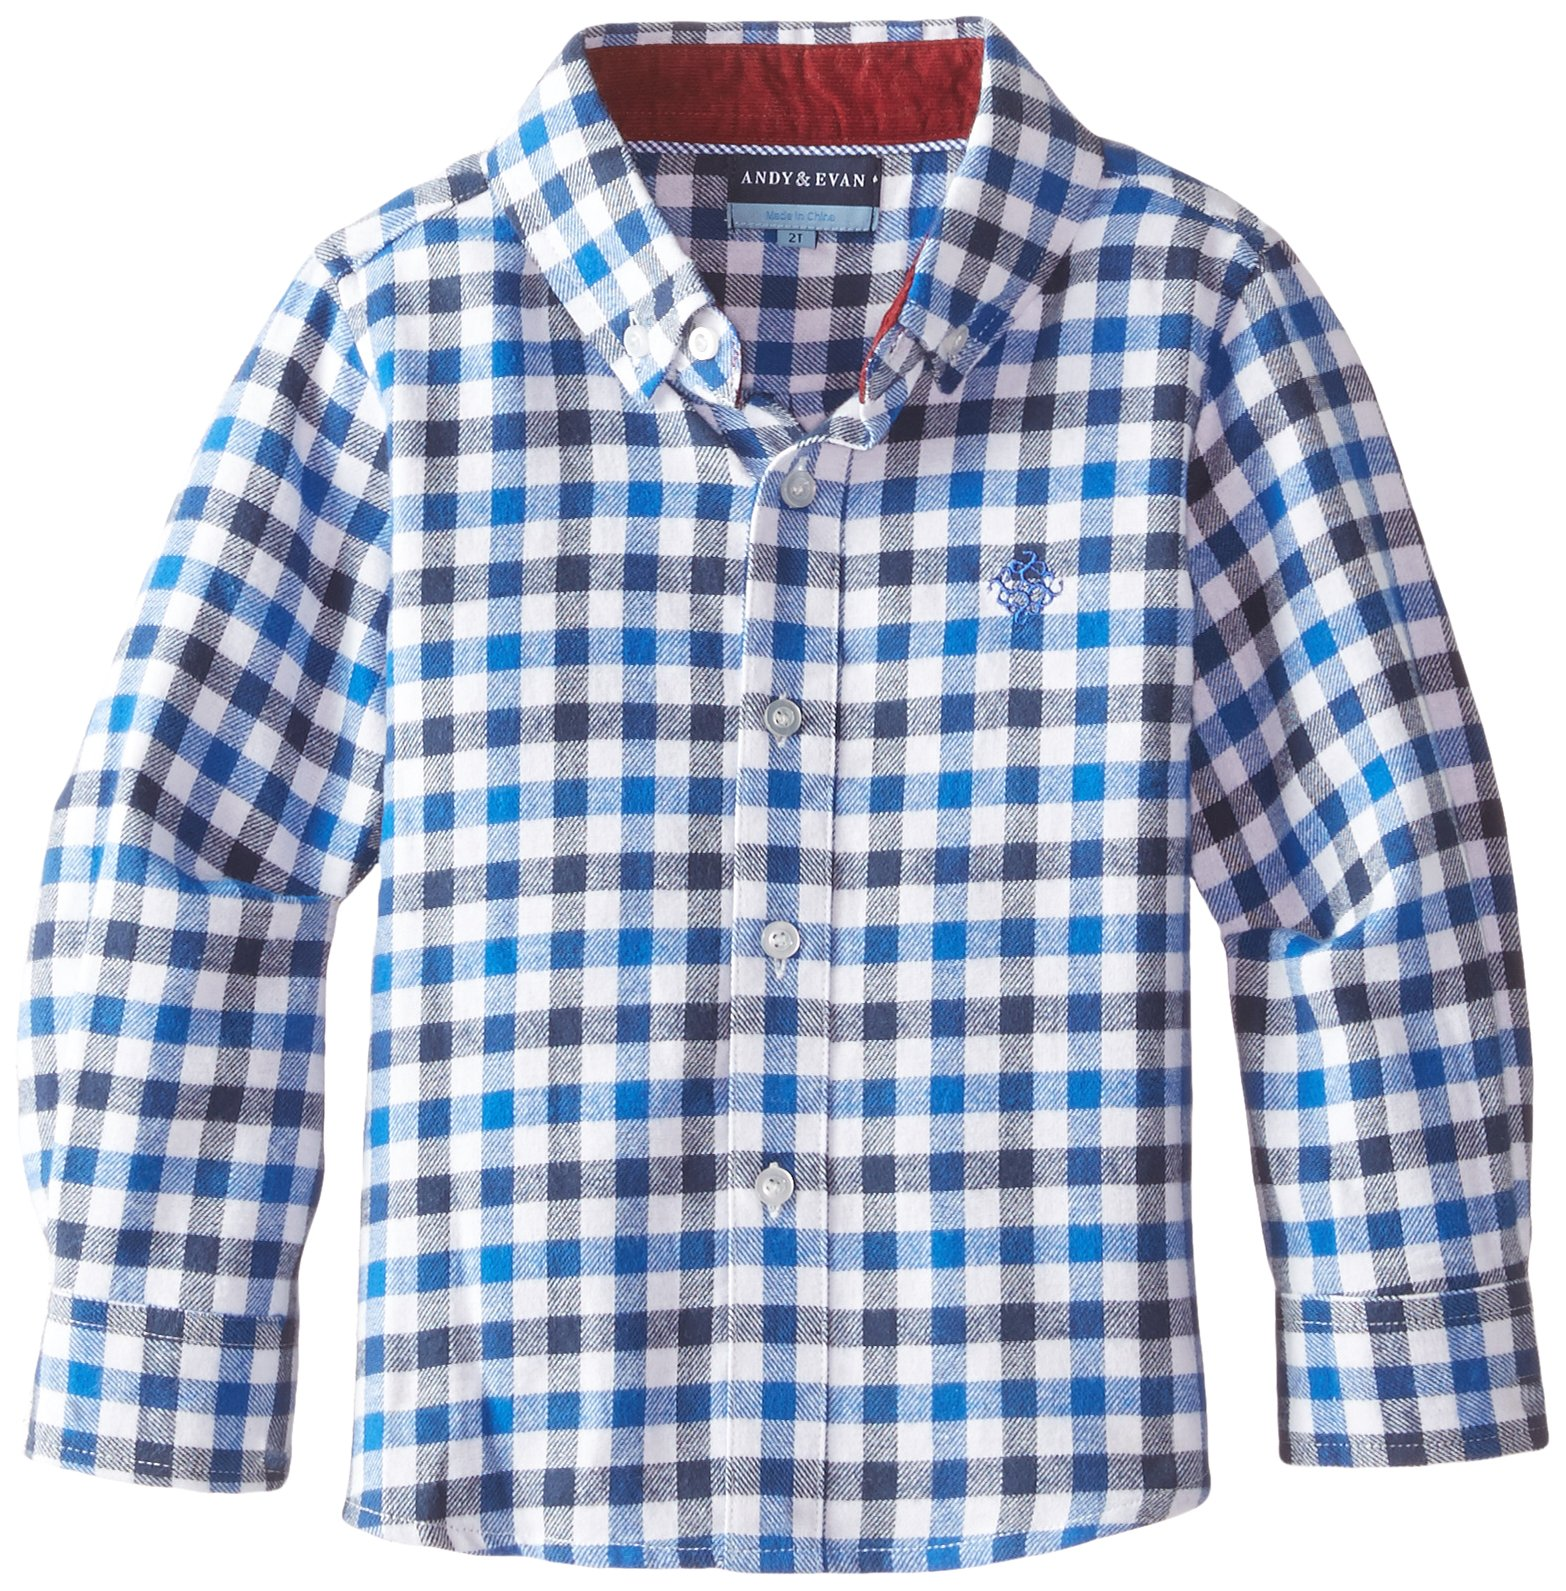 Andy & Evan Boys' Little Blue Checkered Flannel Shirt, 7 Years